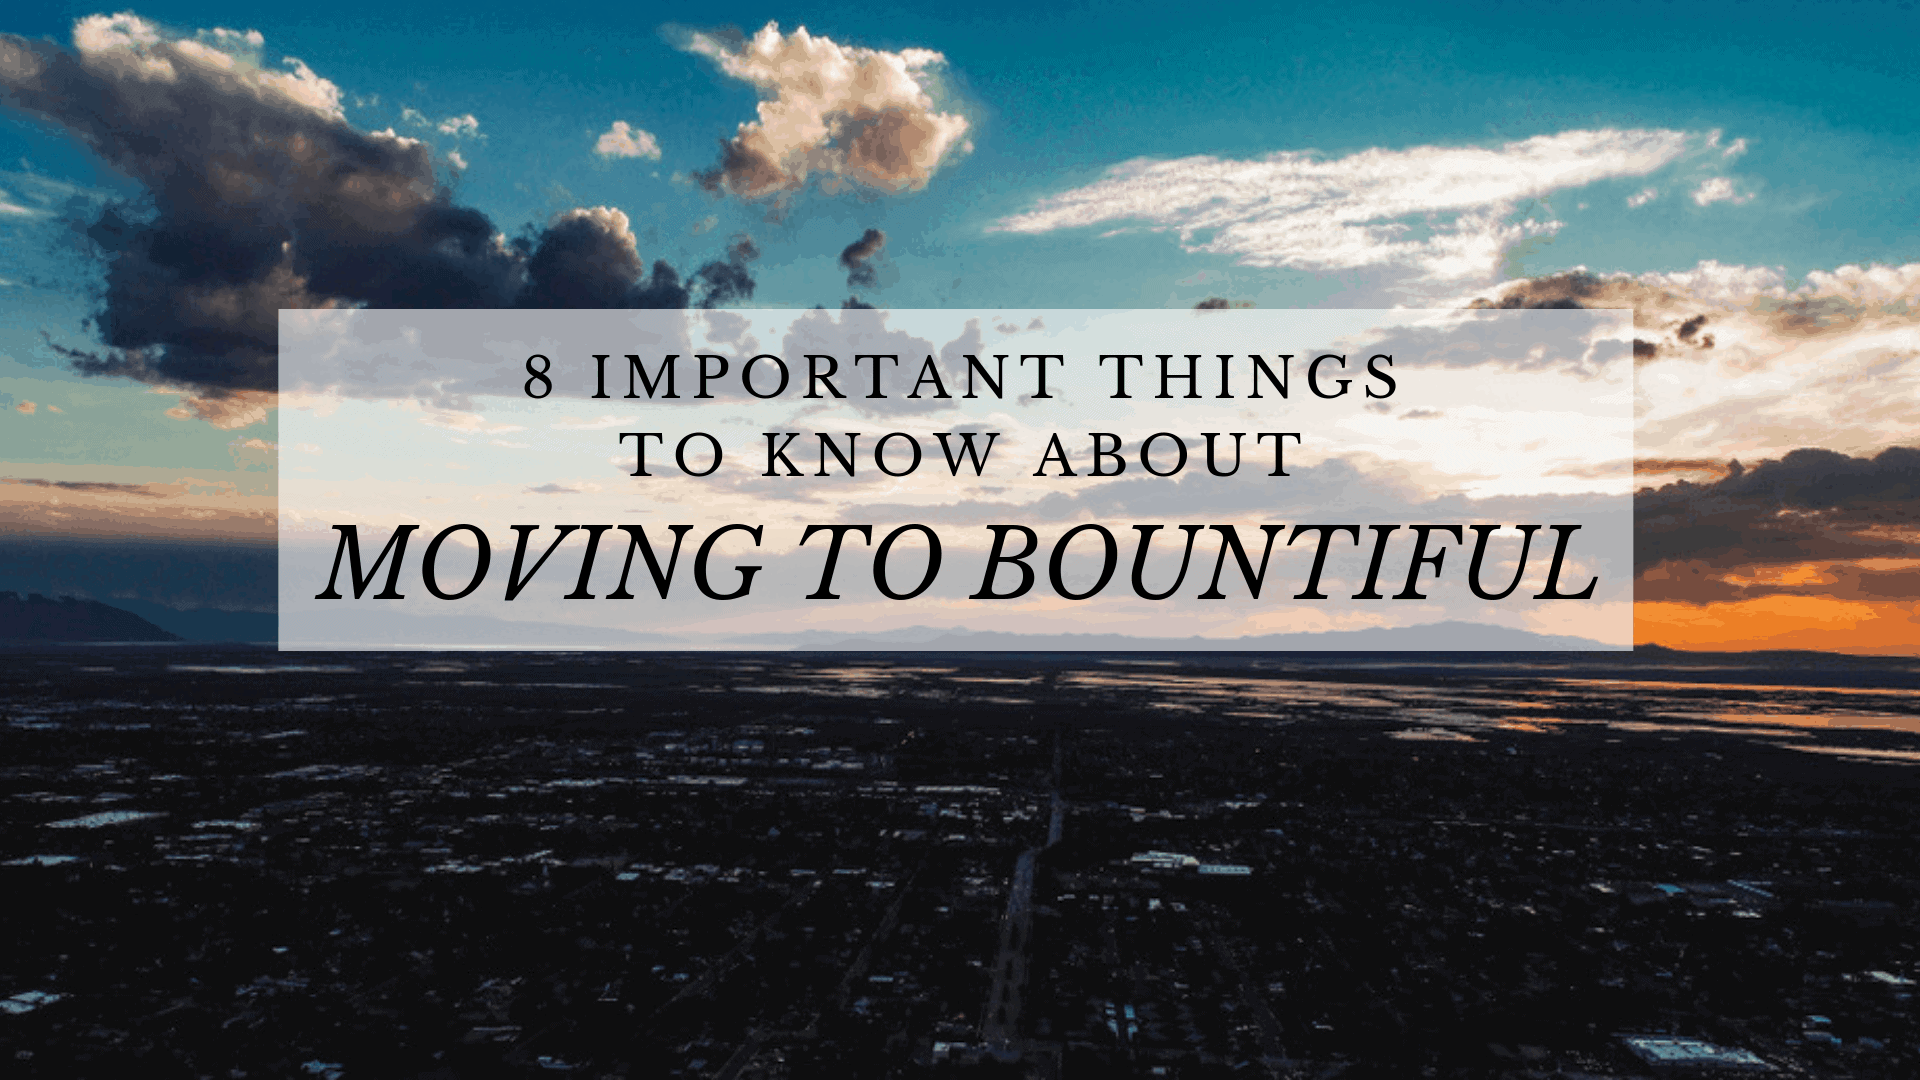 8 Important Things to Know About Moving to Bountiful